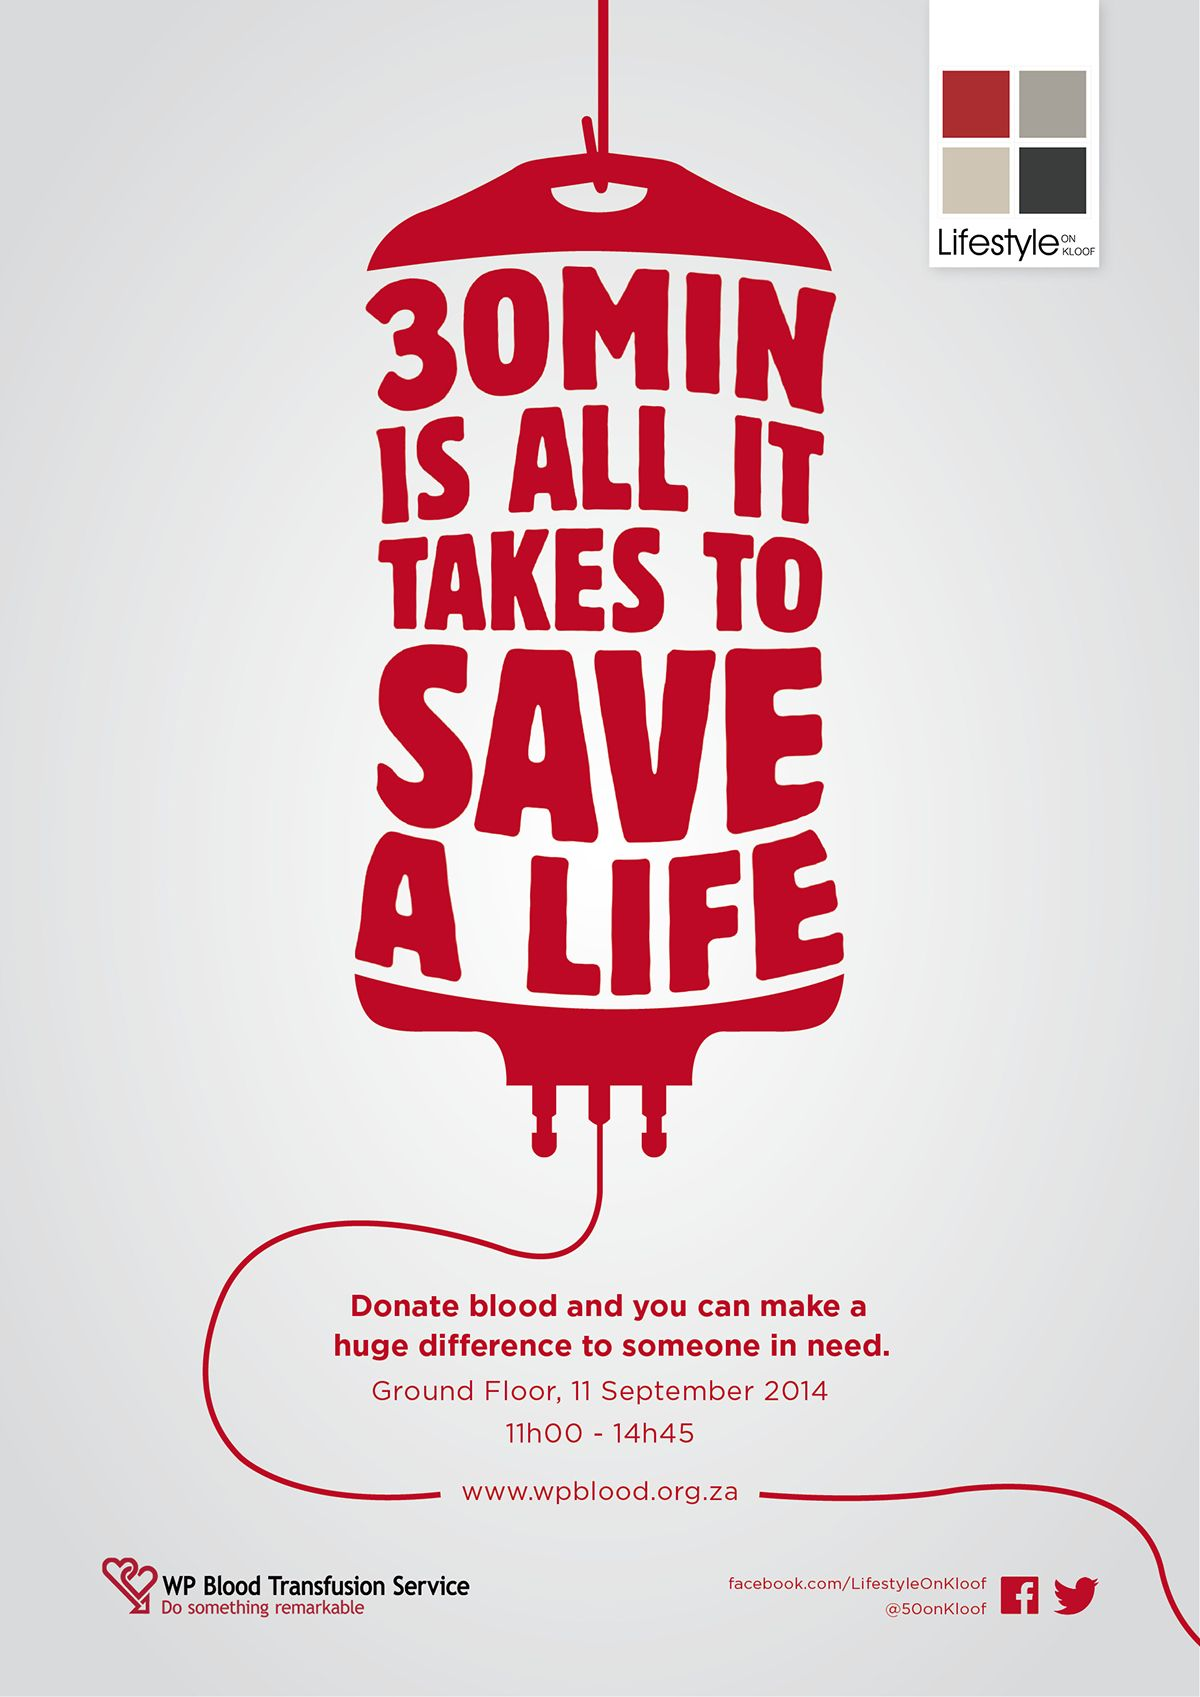 Poster design on blood donation - Blood Drive Campaign For Lifestyle On Kloof Centre The Whole Idea Was About The Little Effort It Takes To Save Someones Life Donating Blood Takes Only And